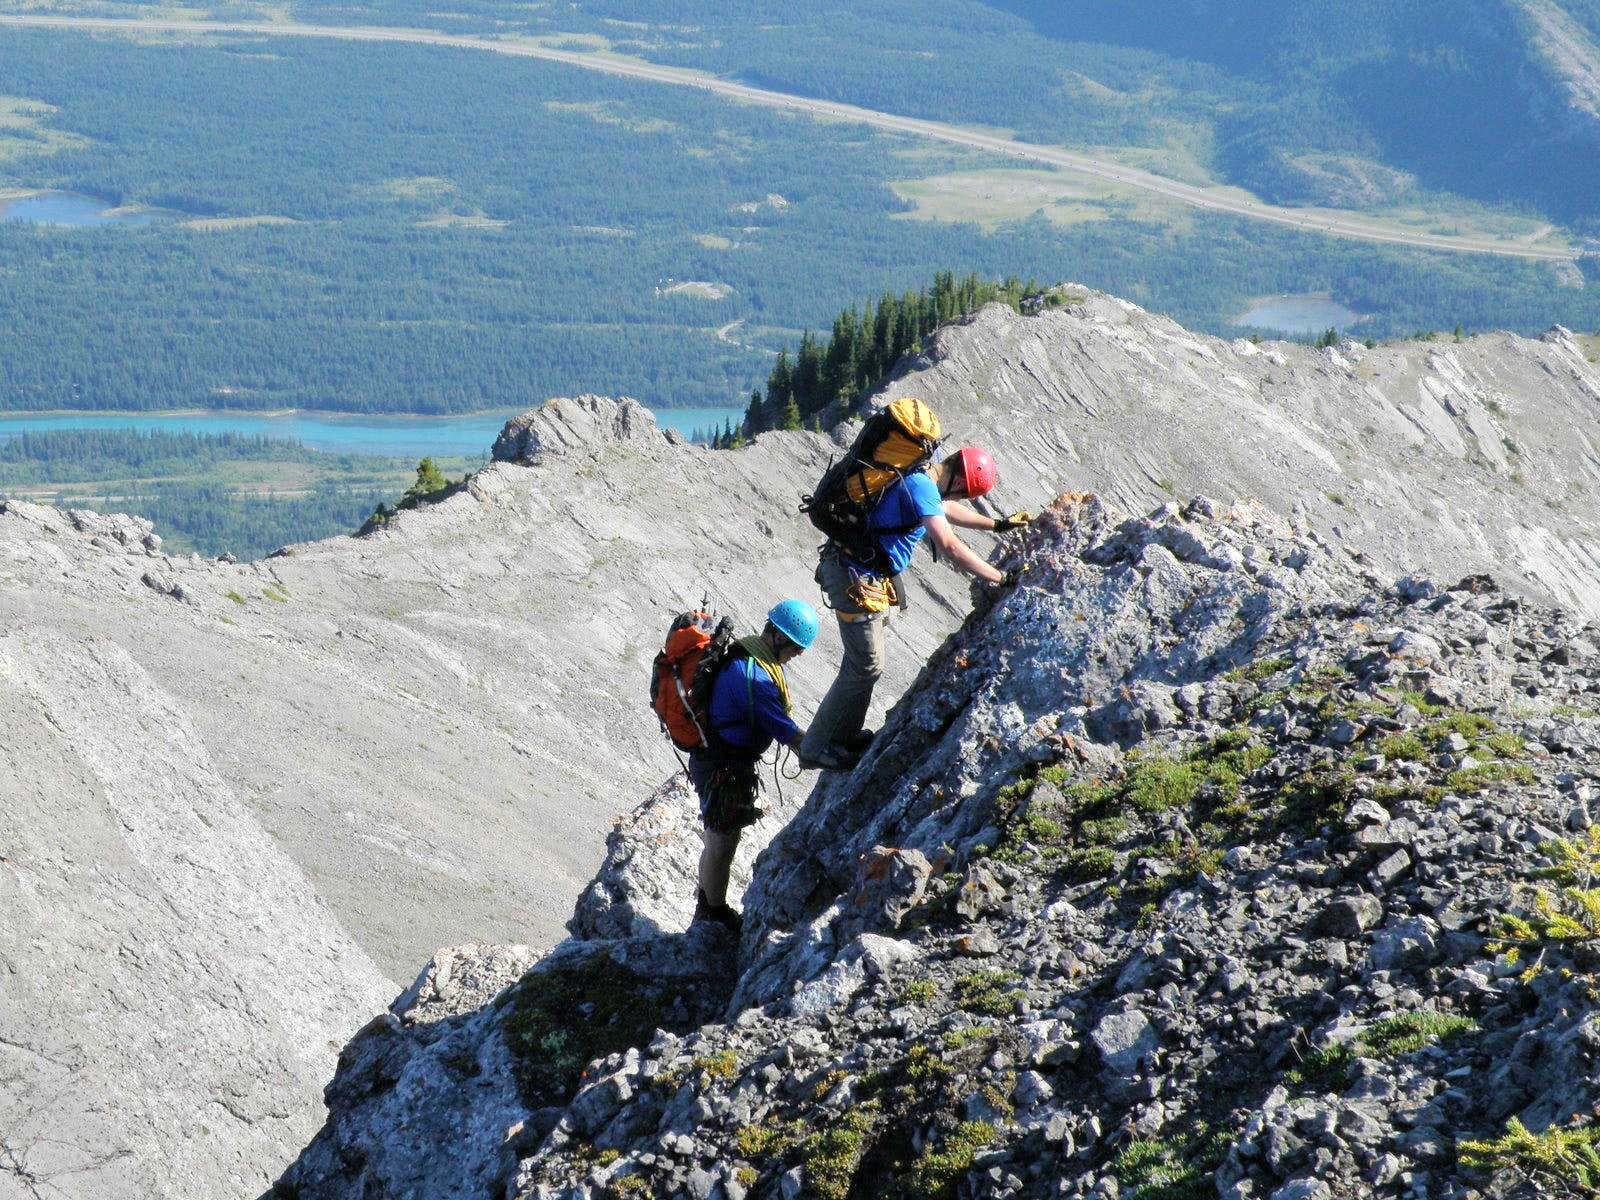 Goat Ridge Traverse N-S, 5.3, Kananaskis